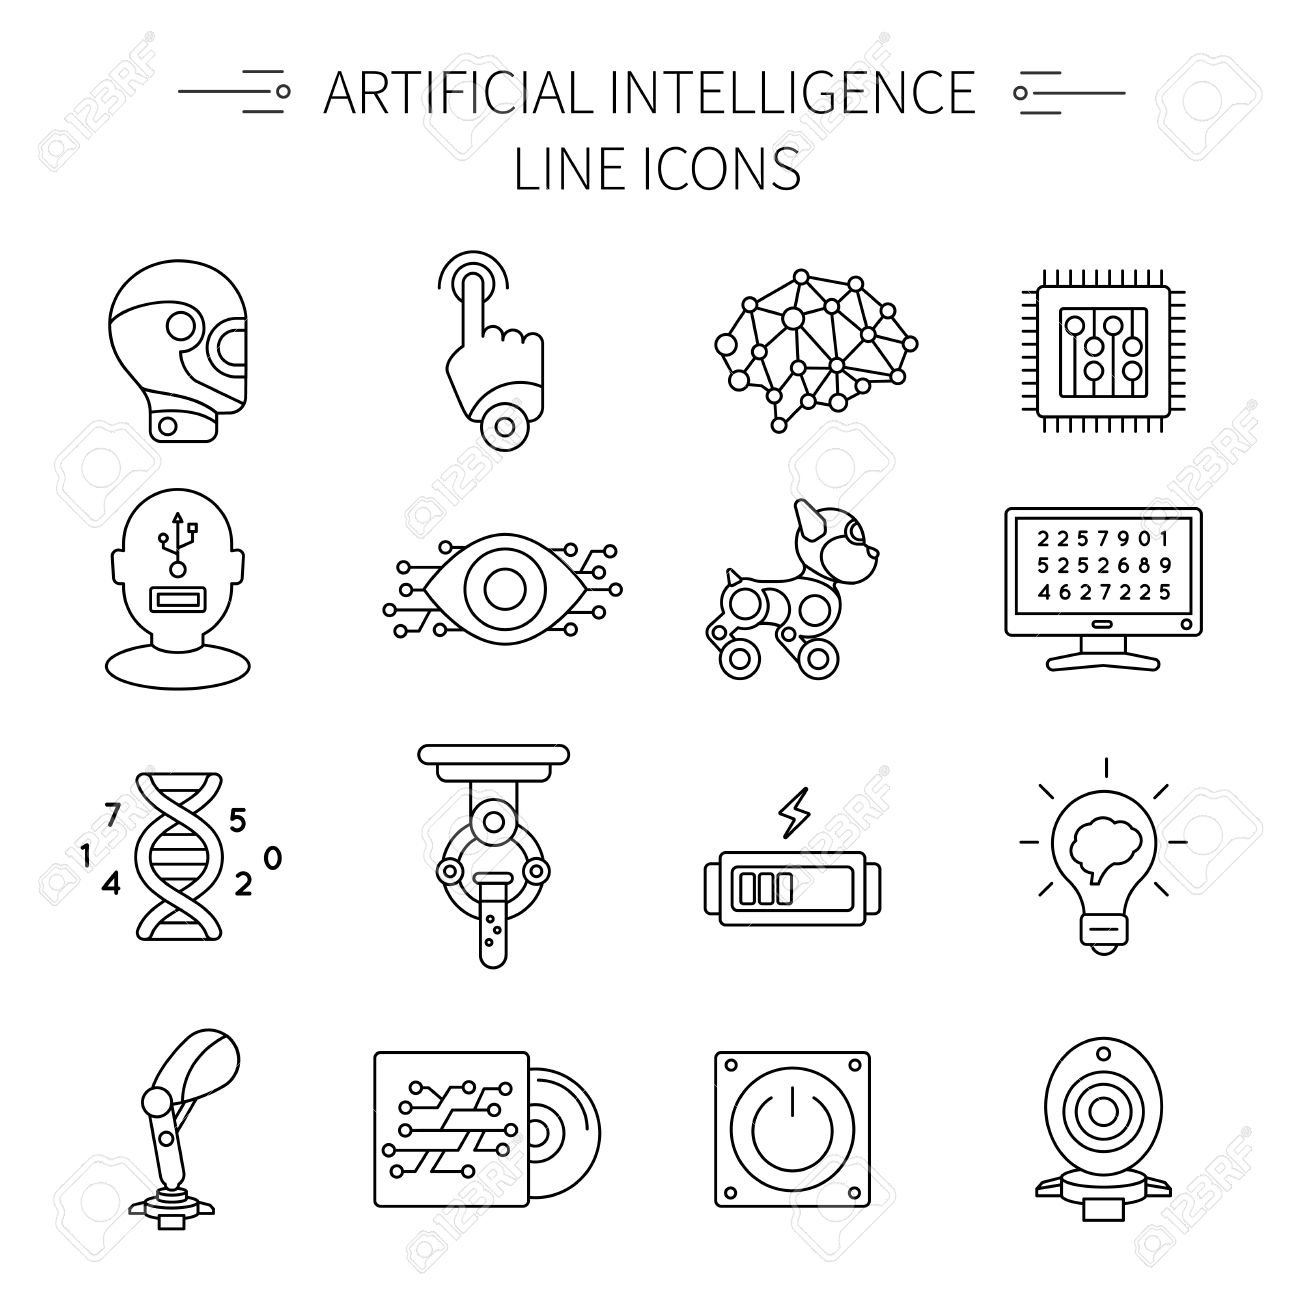 Artificial intelligence line icon set with different or various types of robots and parts vector illustration - 58297382